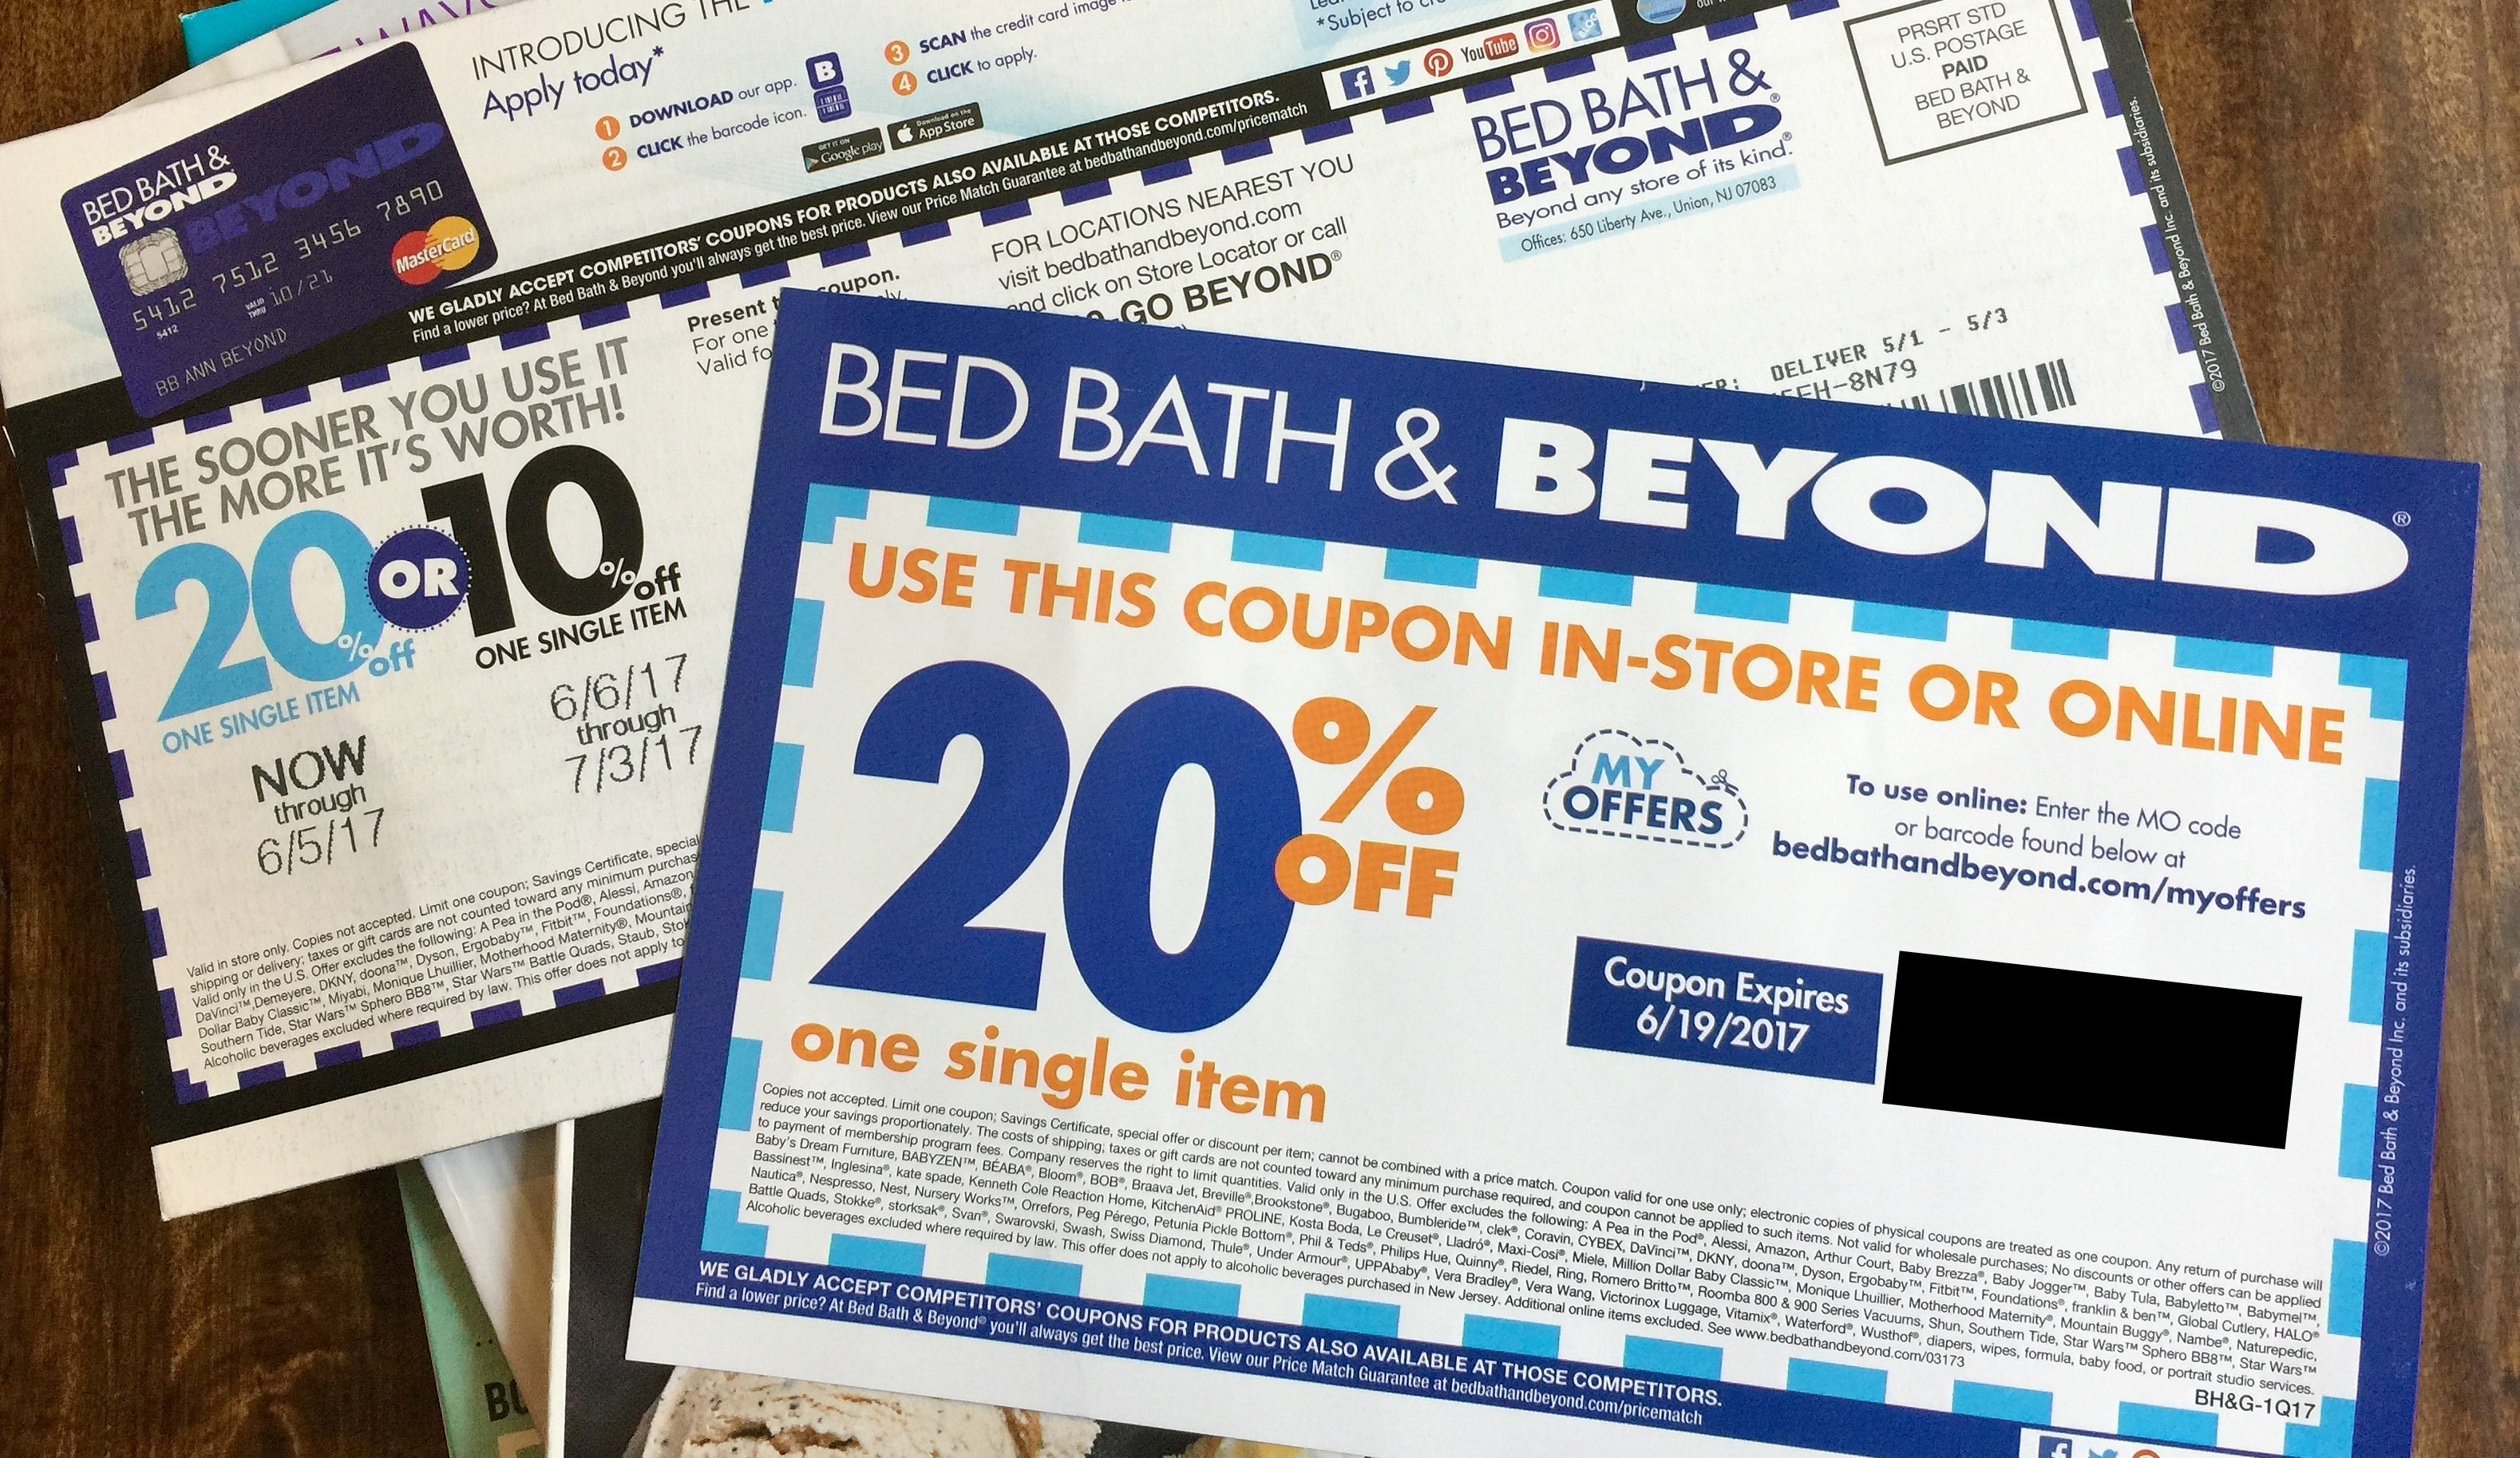 Shop Save Big At Bed Bath Beyond With These Money Saving Secrets